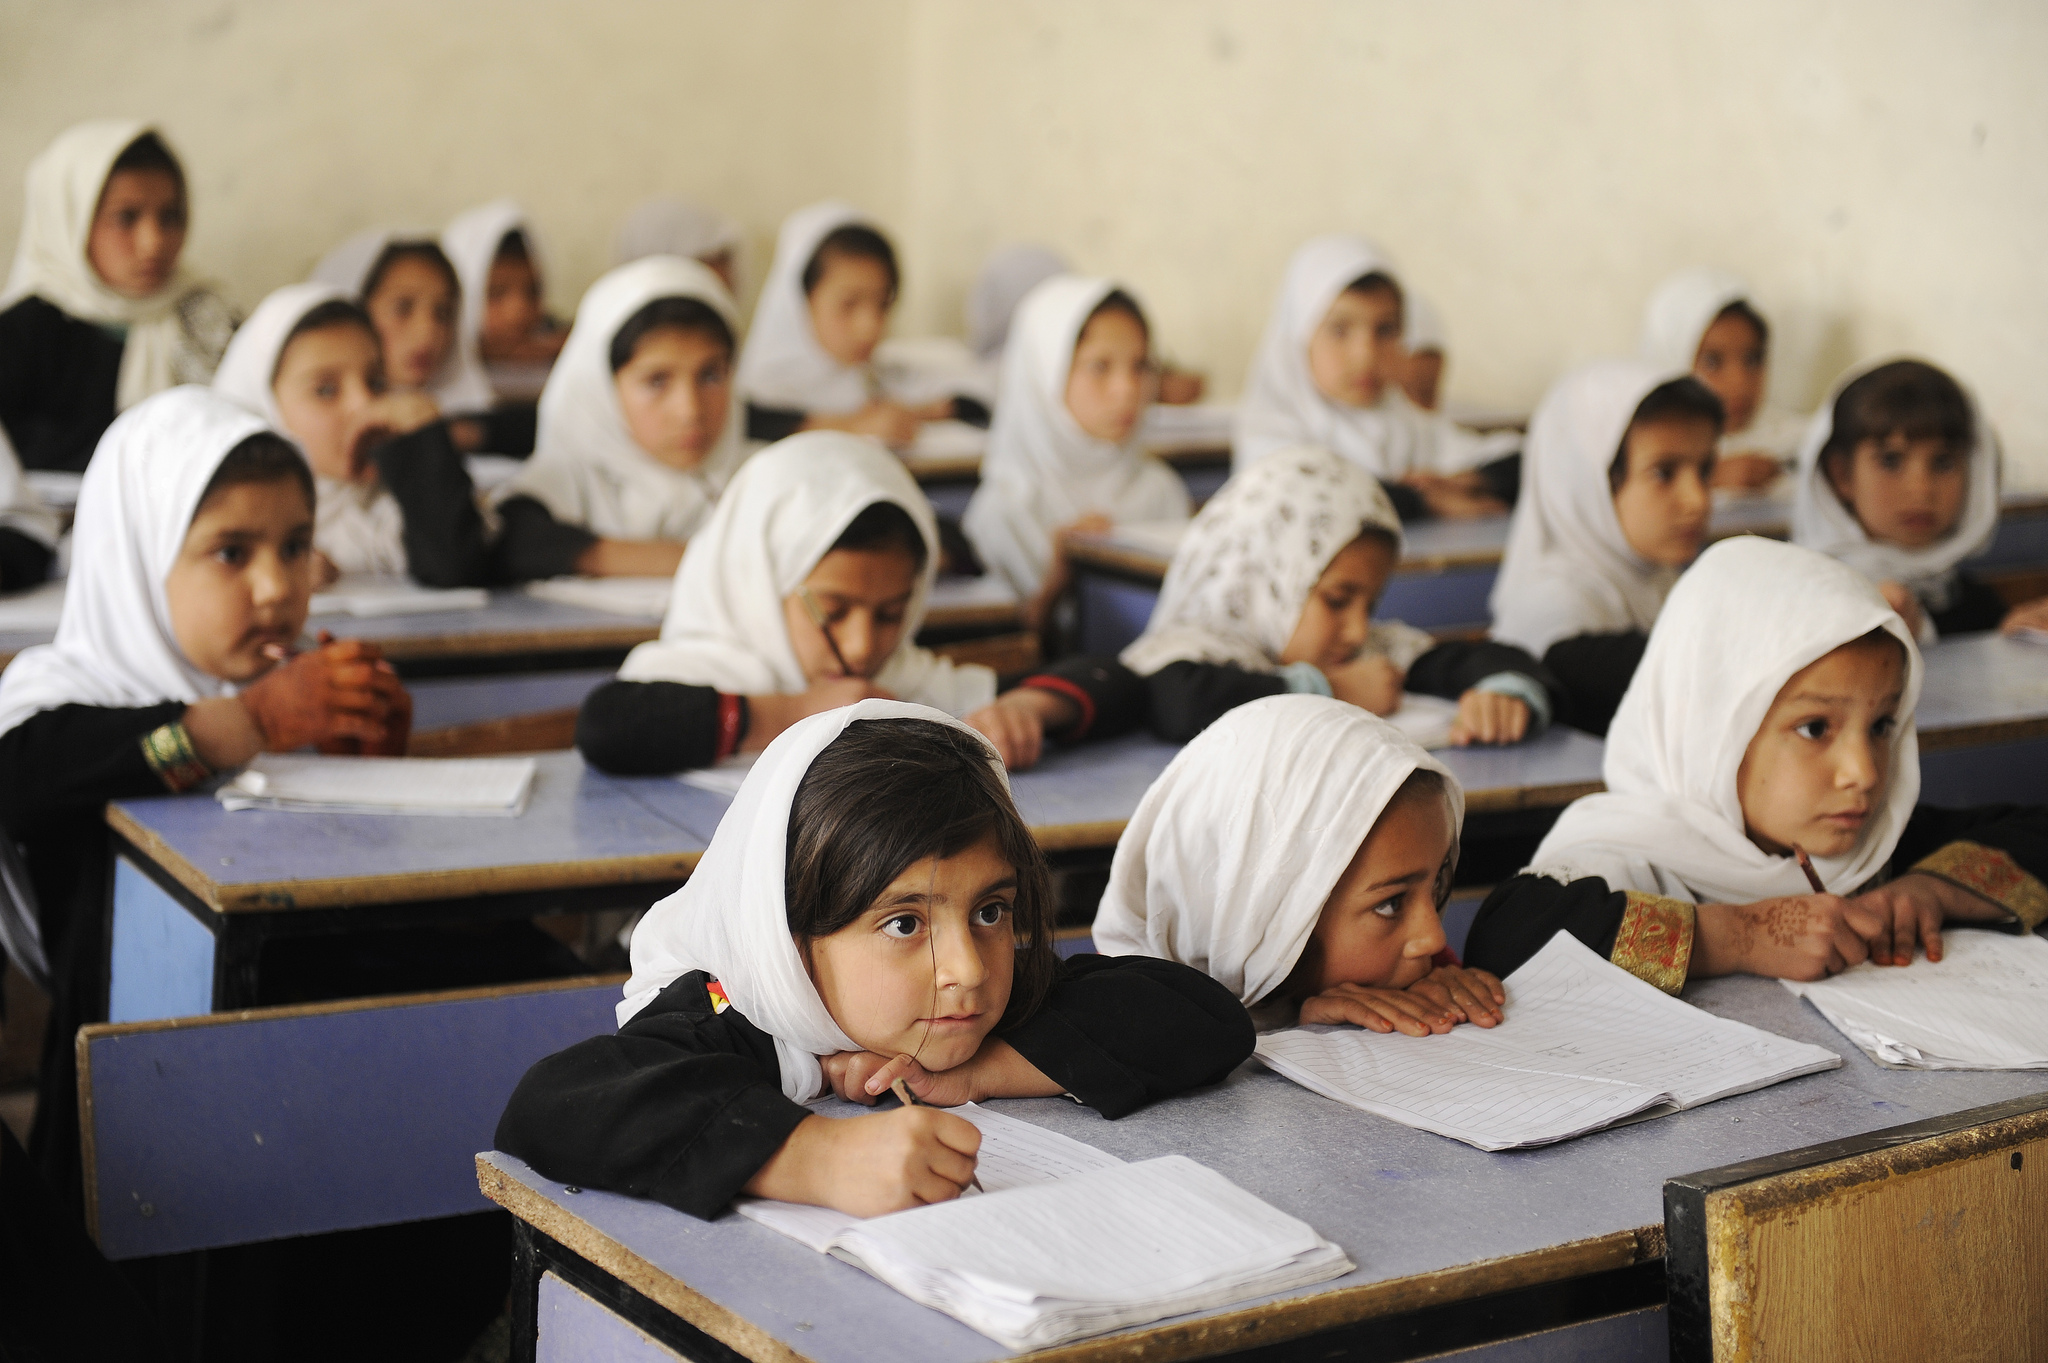 Taliban will offer education to Afghan girls, says UNICEF official